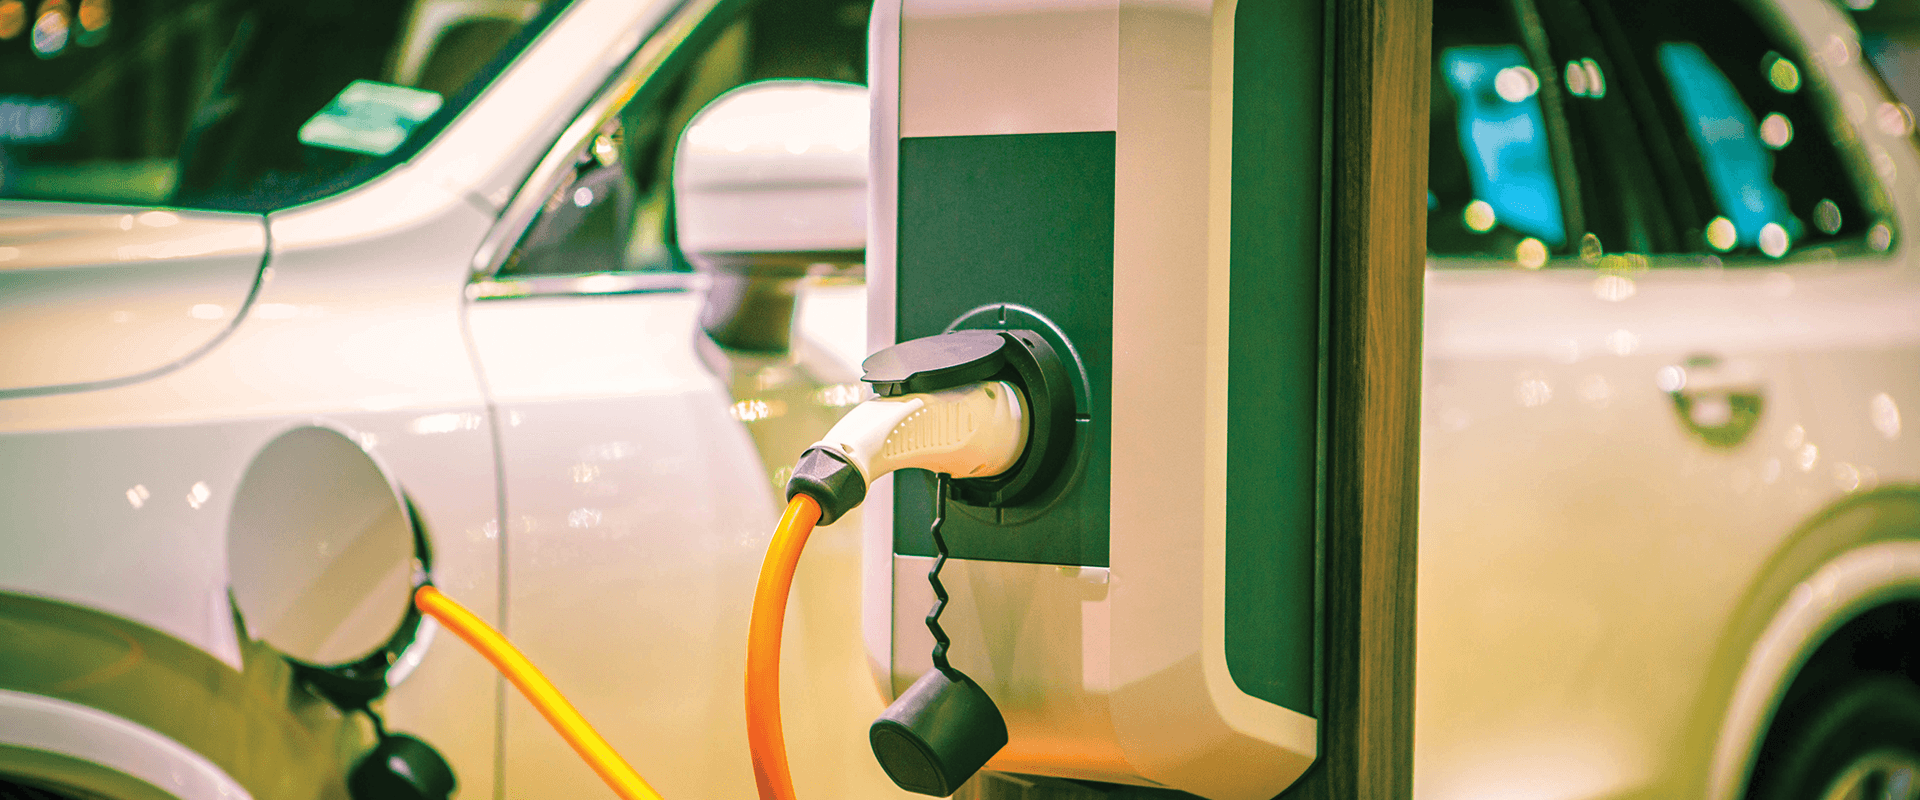 Electric Vehicle Market Forecast and Critical Adoption Steps